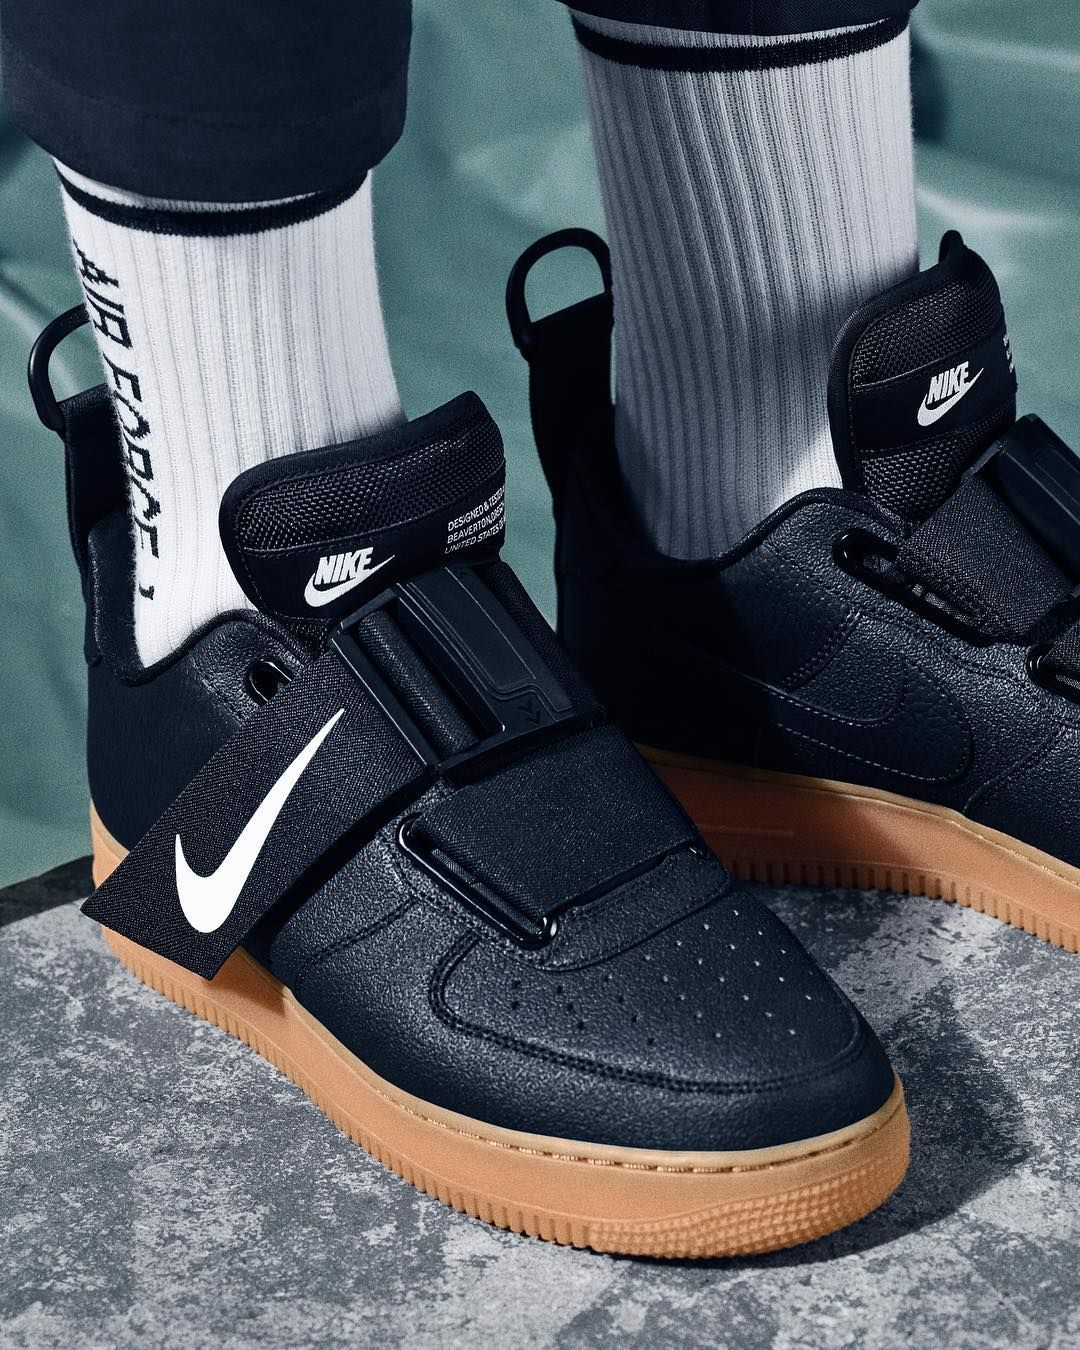 195775ea324 Air Force 1 Utility | Hubby's style in 2019 | Nike sportswear, Nike ...